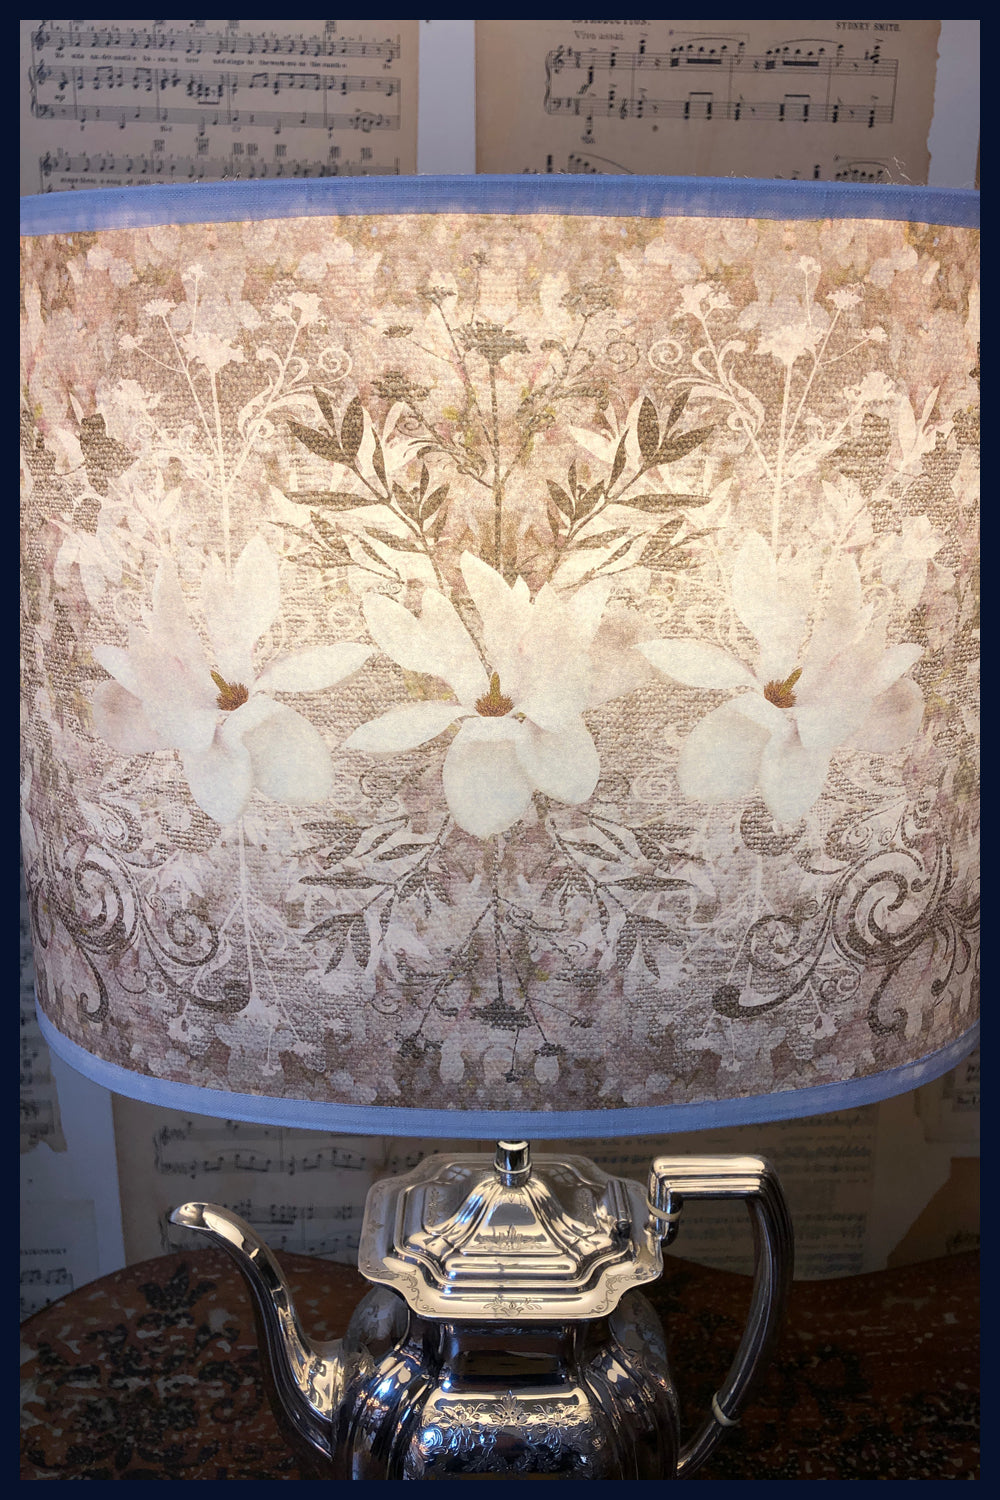 Magnolia Damask - Limited Edition Lampshades Featuring White Magnolias